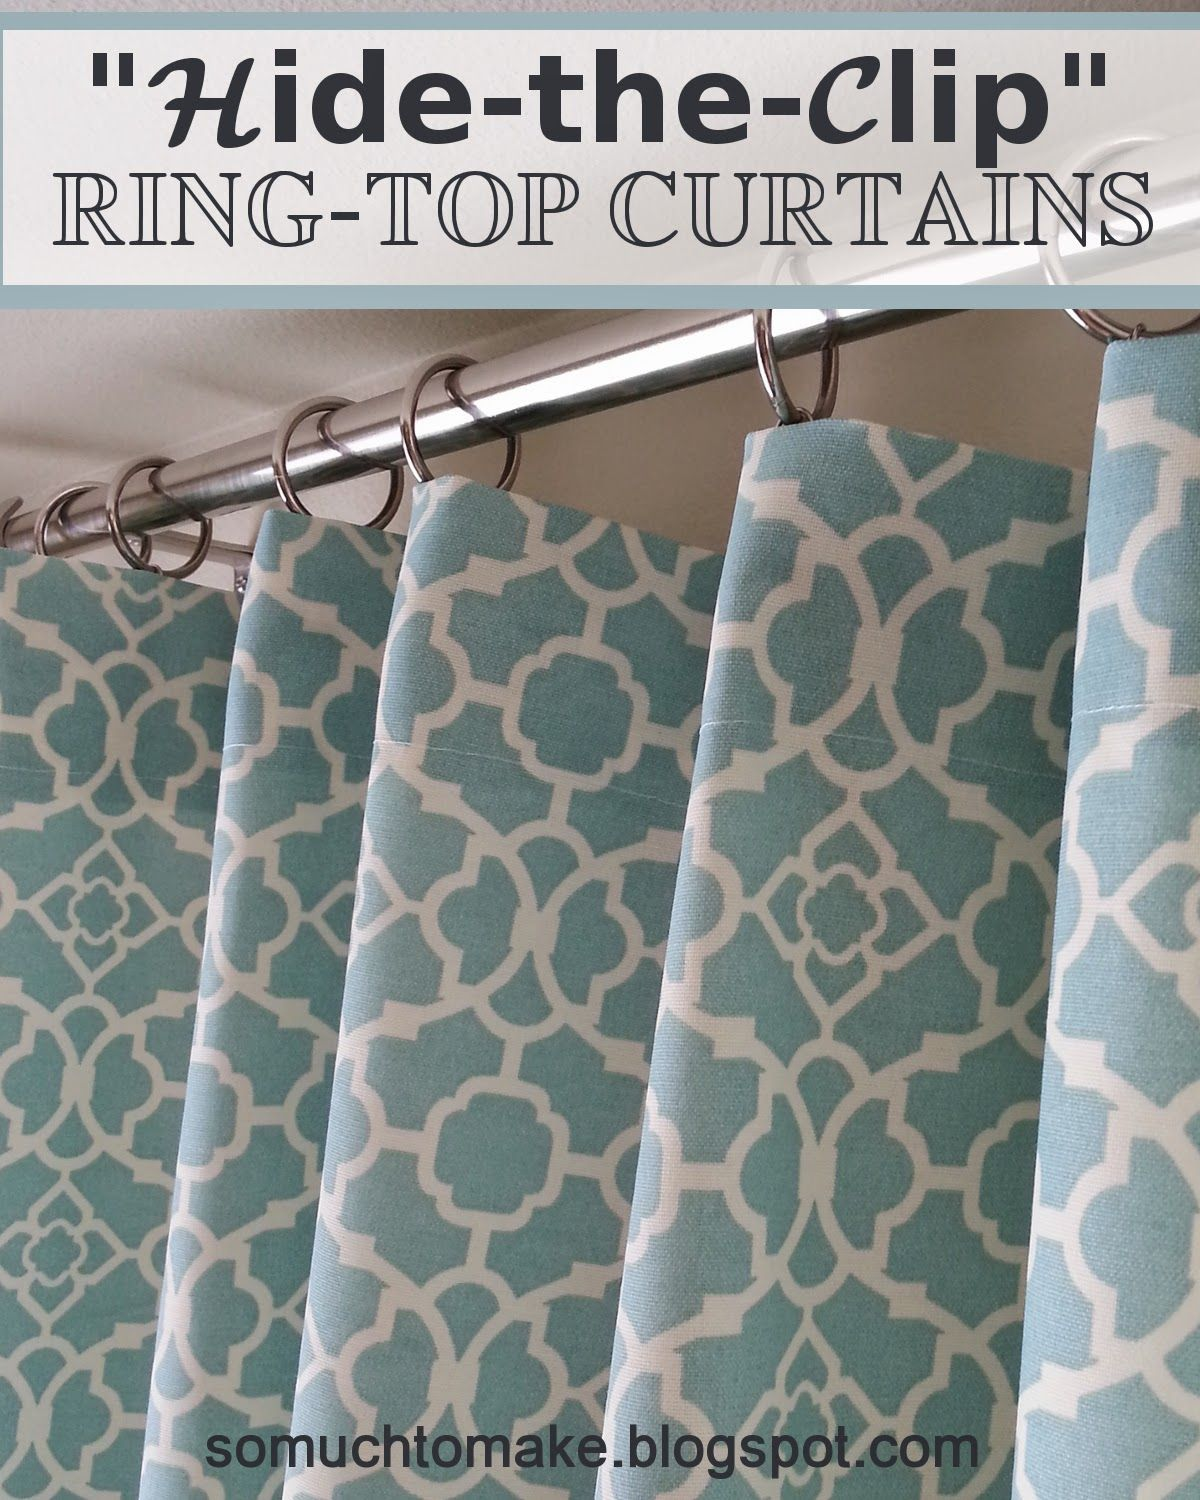 How to sew curtains with rings